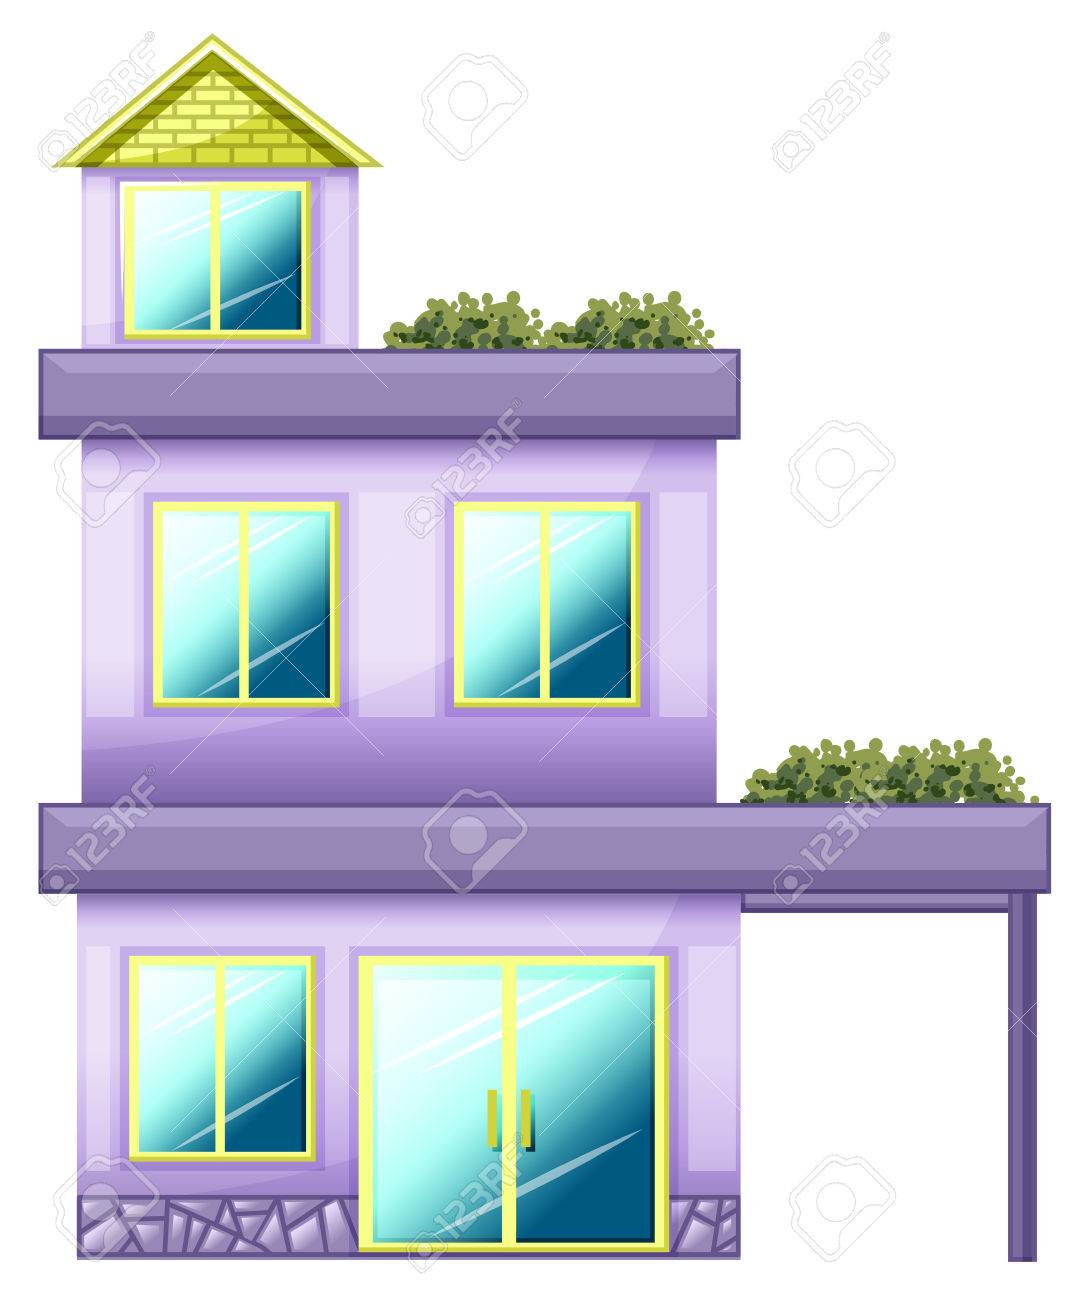 Illustration of a three-story building on a white background Stock Vector - 23977116